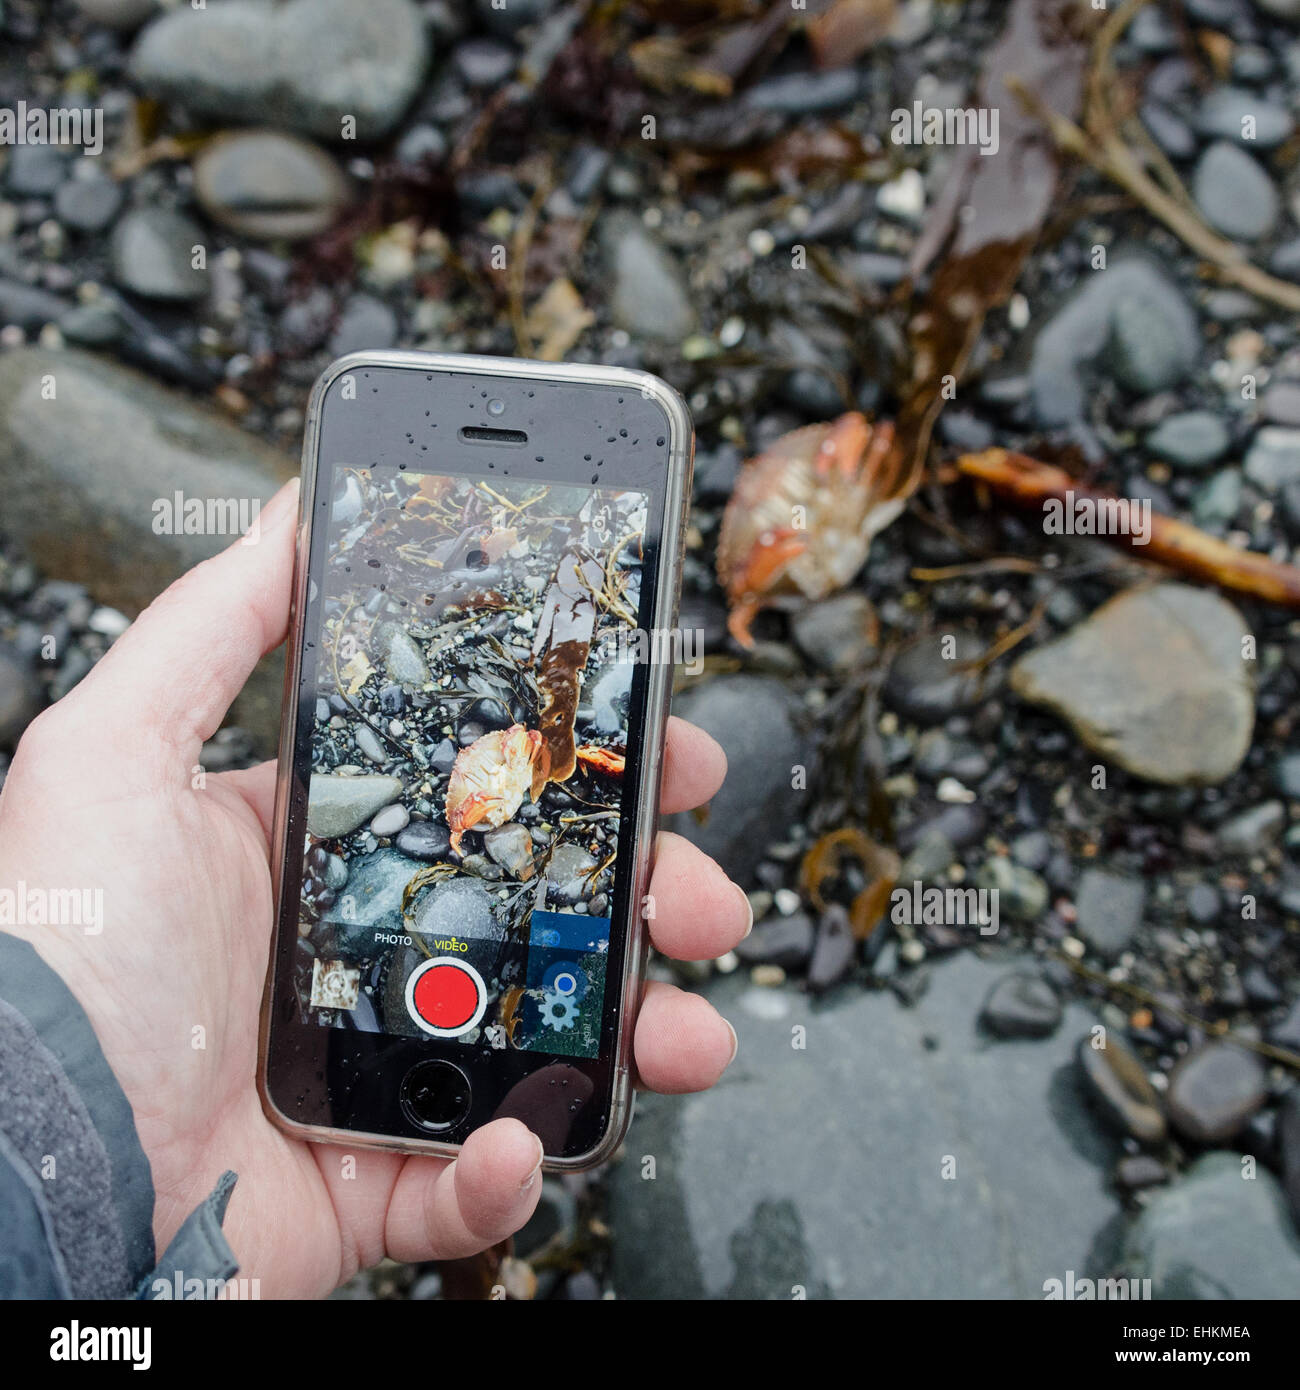 Woman's left hand using an iPhone to photograph a Rock Crab on the beach, Acadia National Park,  Bar Harbor, Maine. Stock Photo